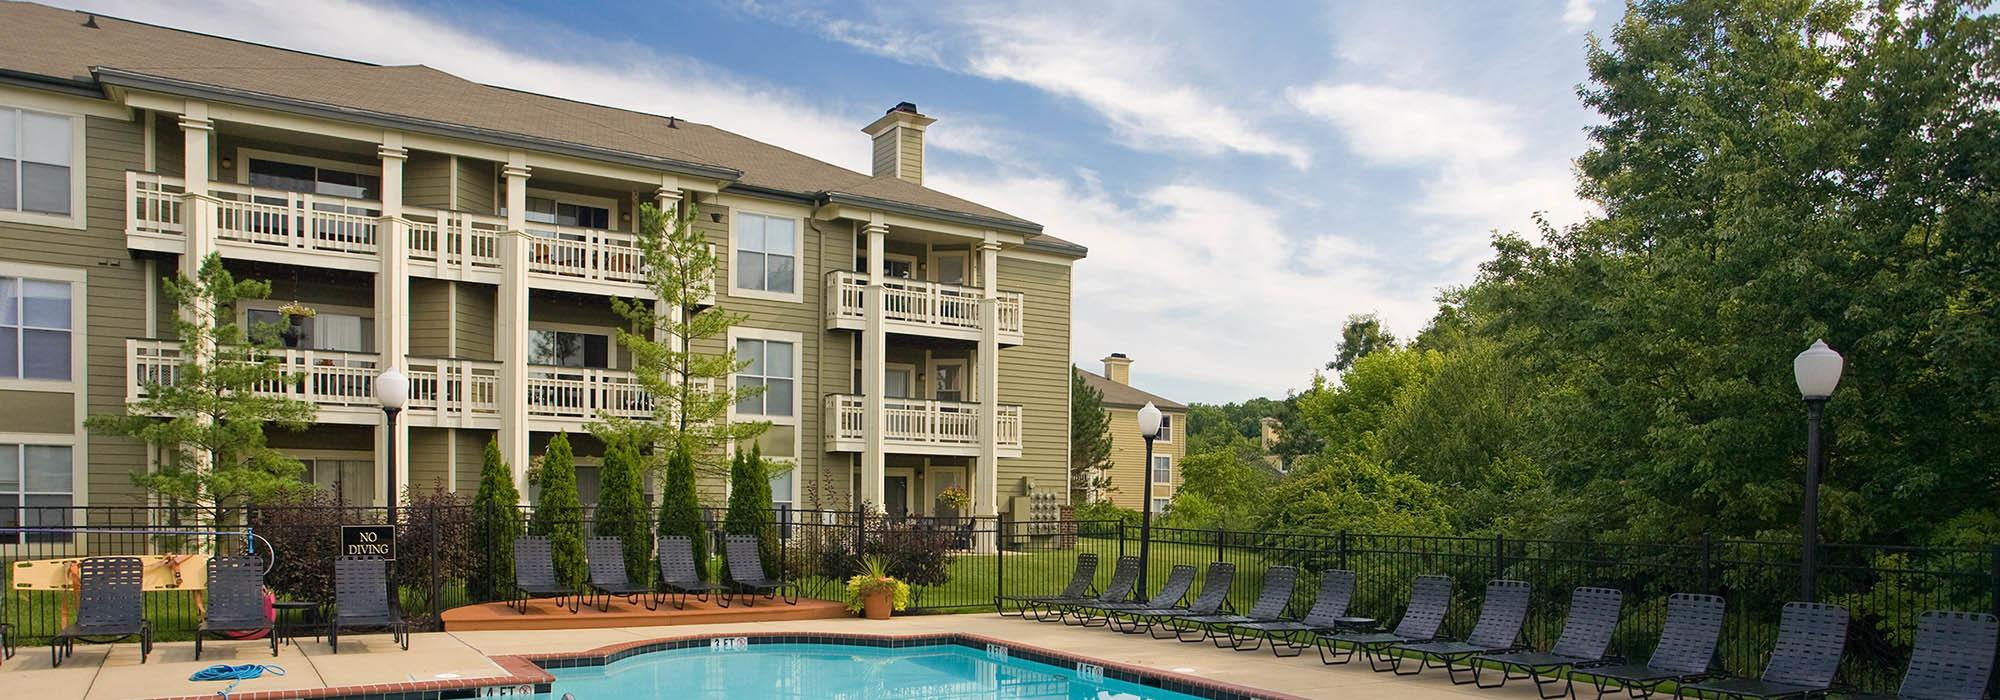 Windermere Place West Chester Pa Apartments For Rent Near Philadelphia The Point At Windermere